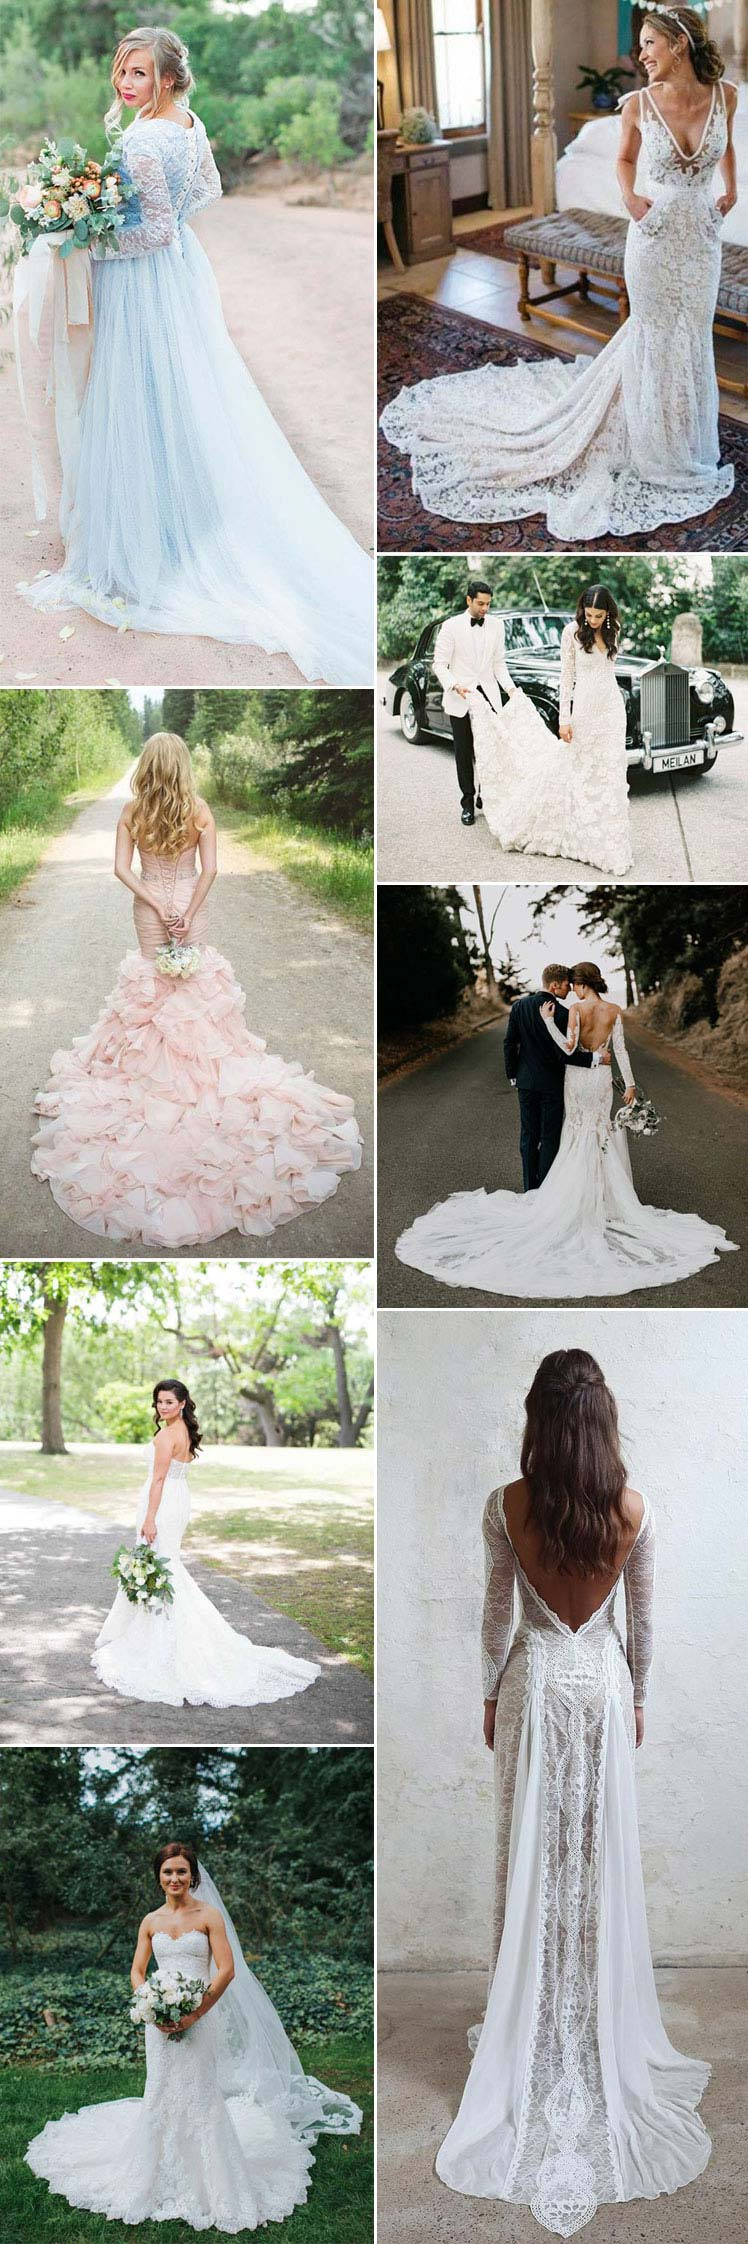 Elegant wedding gowns with trains